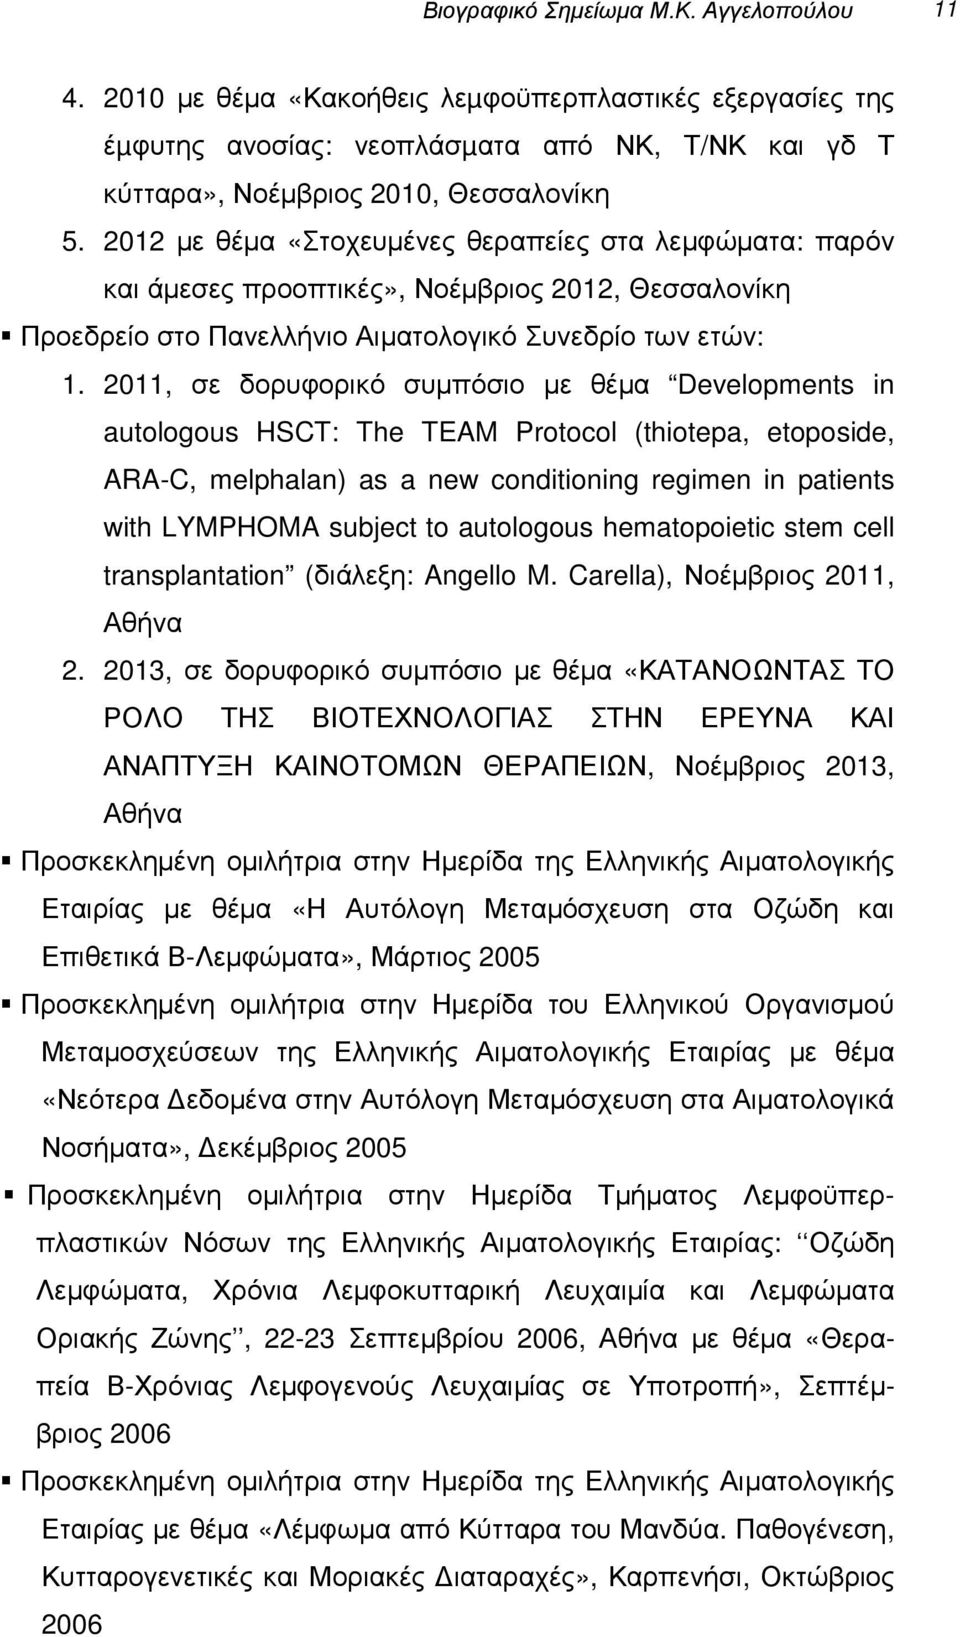 2011, σε δορυφορικό συµπόσιο µε θέµα Developments in autologous HSCT: The TEAM Protocol (thiotepa, etoposide, ARA-C, melphalan) as a new conditioning regimen in patients with LYMPHOMA subject to